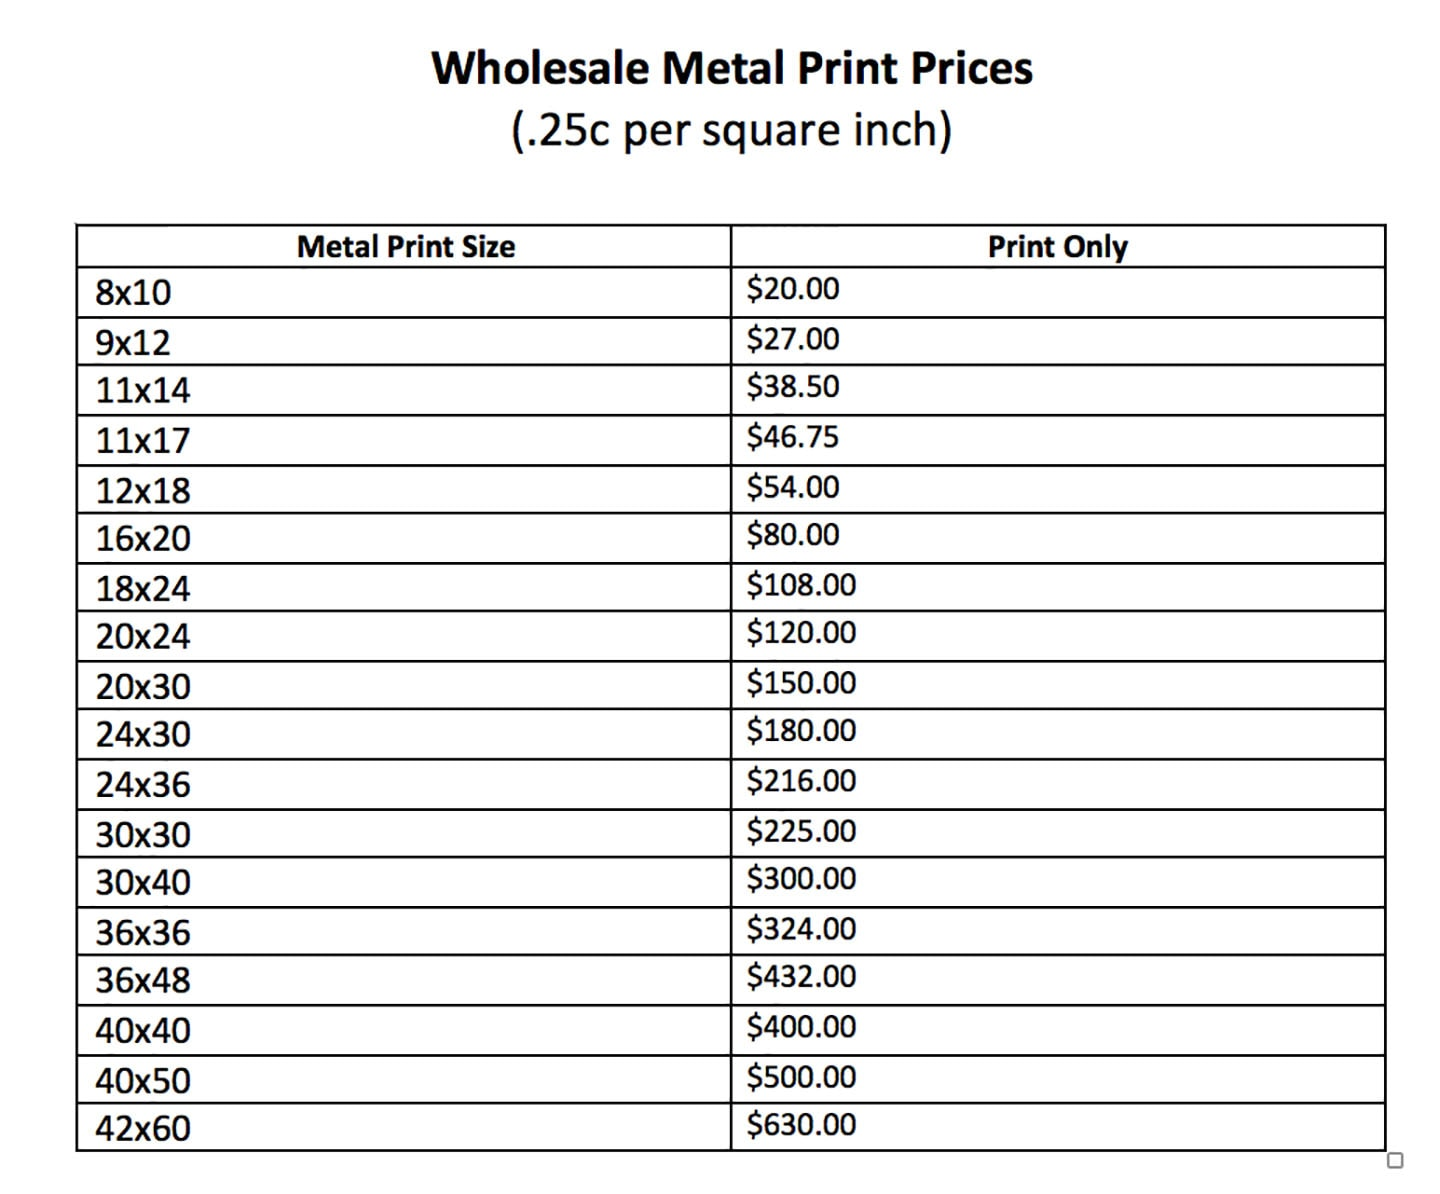 Wholesale Metal Print Prices